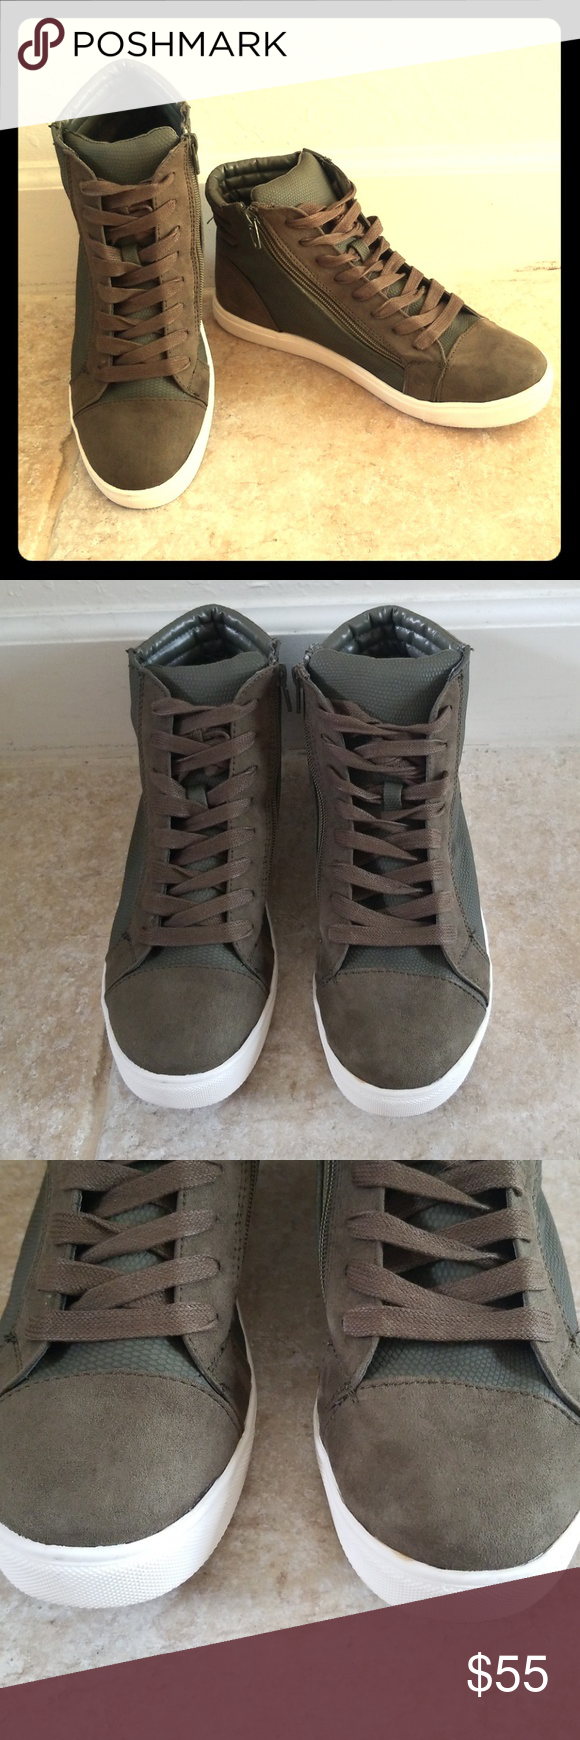 44ad4523ede Steve Madden Women s Olive Exact High Top Sneakers Olive green Steve Madden  lace up zippered high